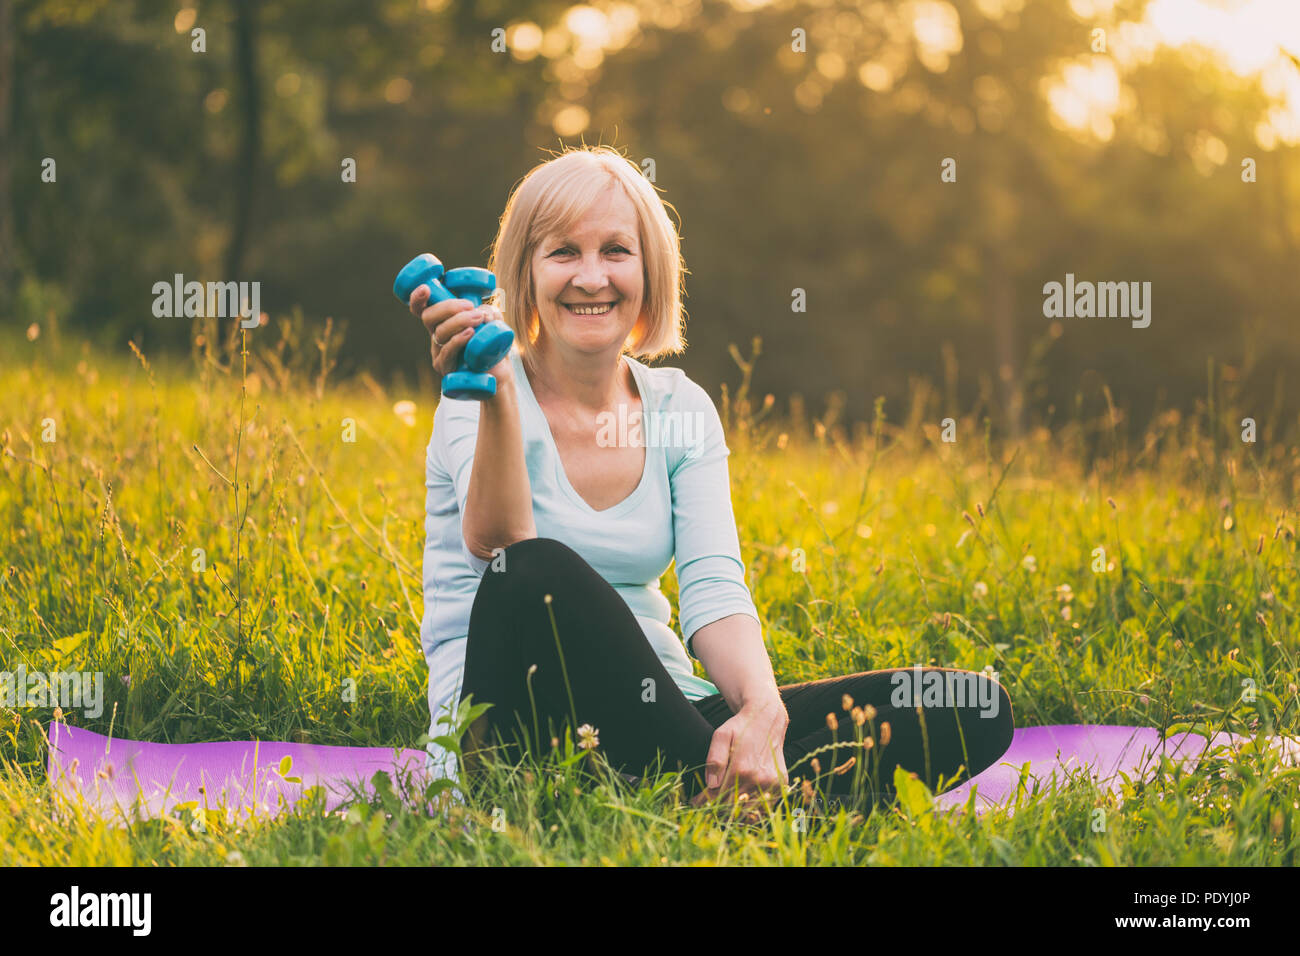 Portrait of sporty senior woman holding weights outdoor.Image is intentionally toned. - Stock Image